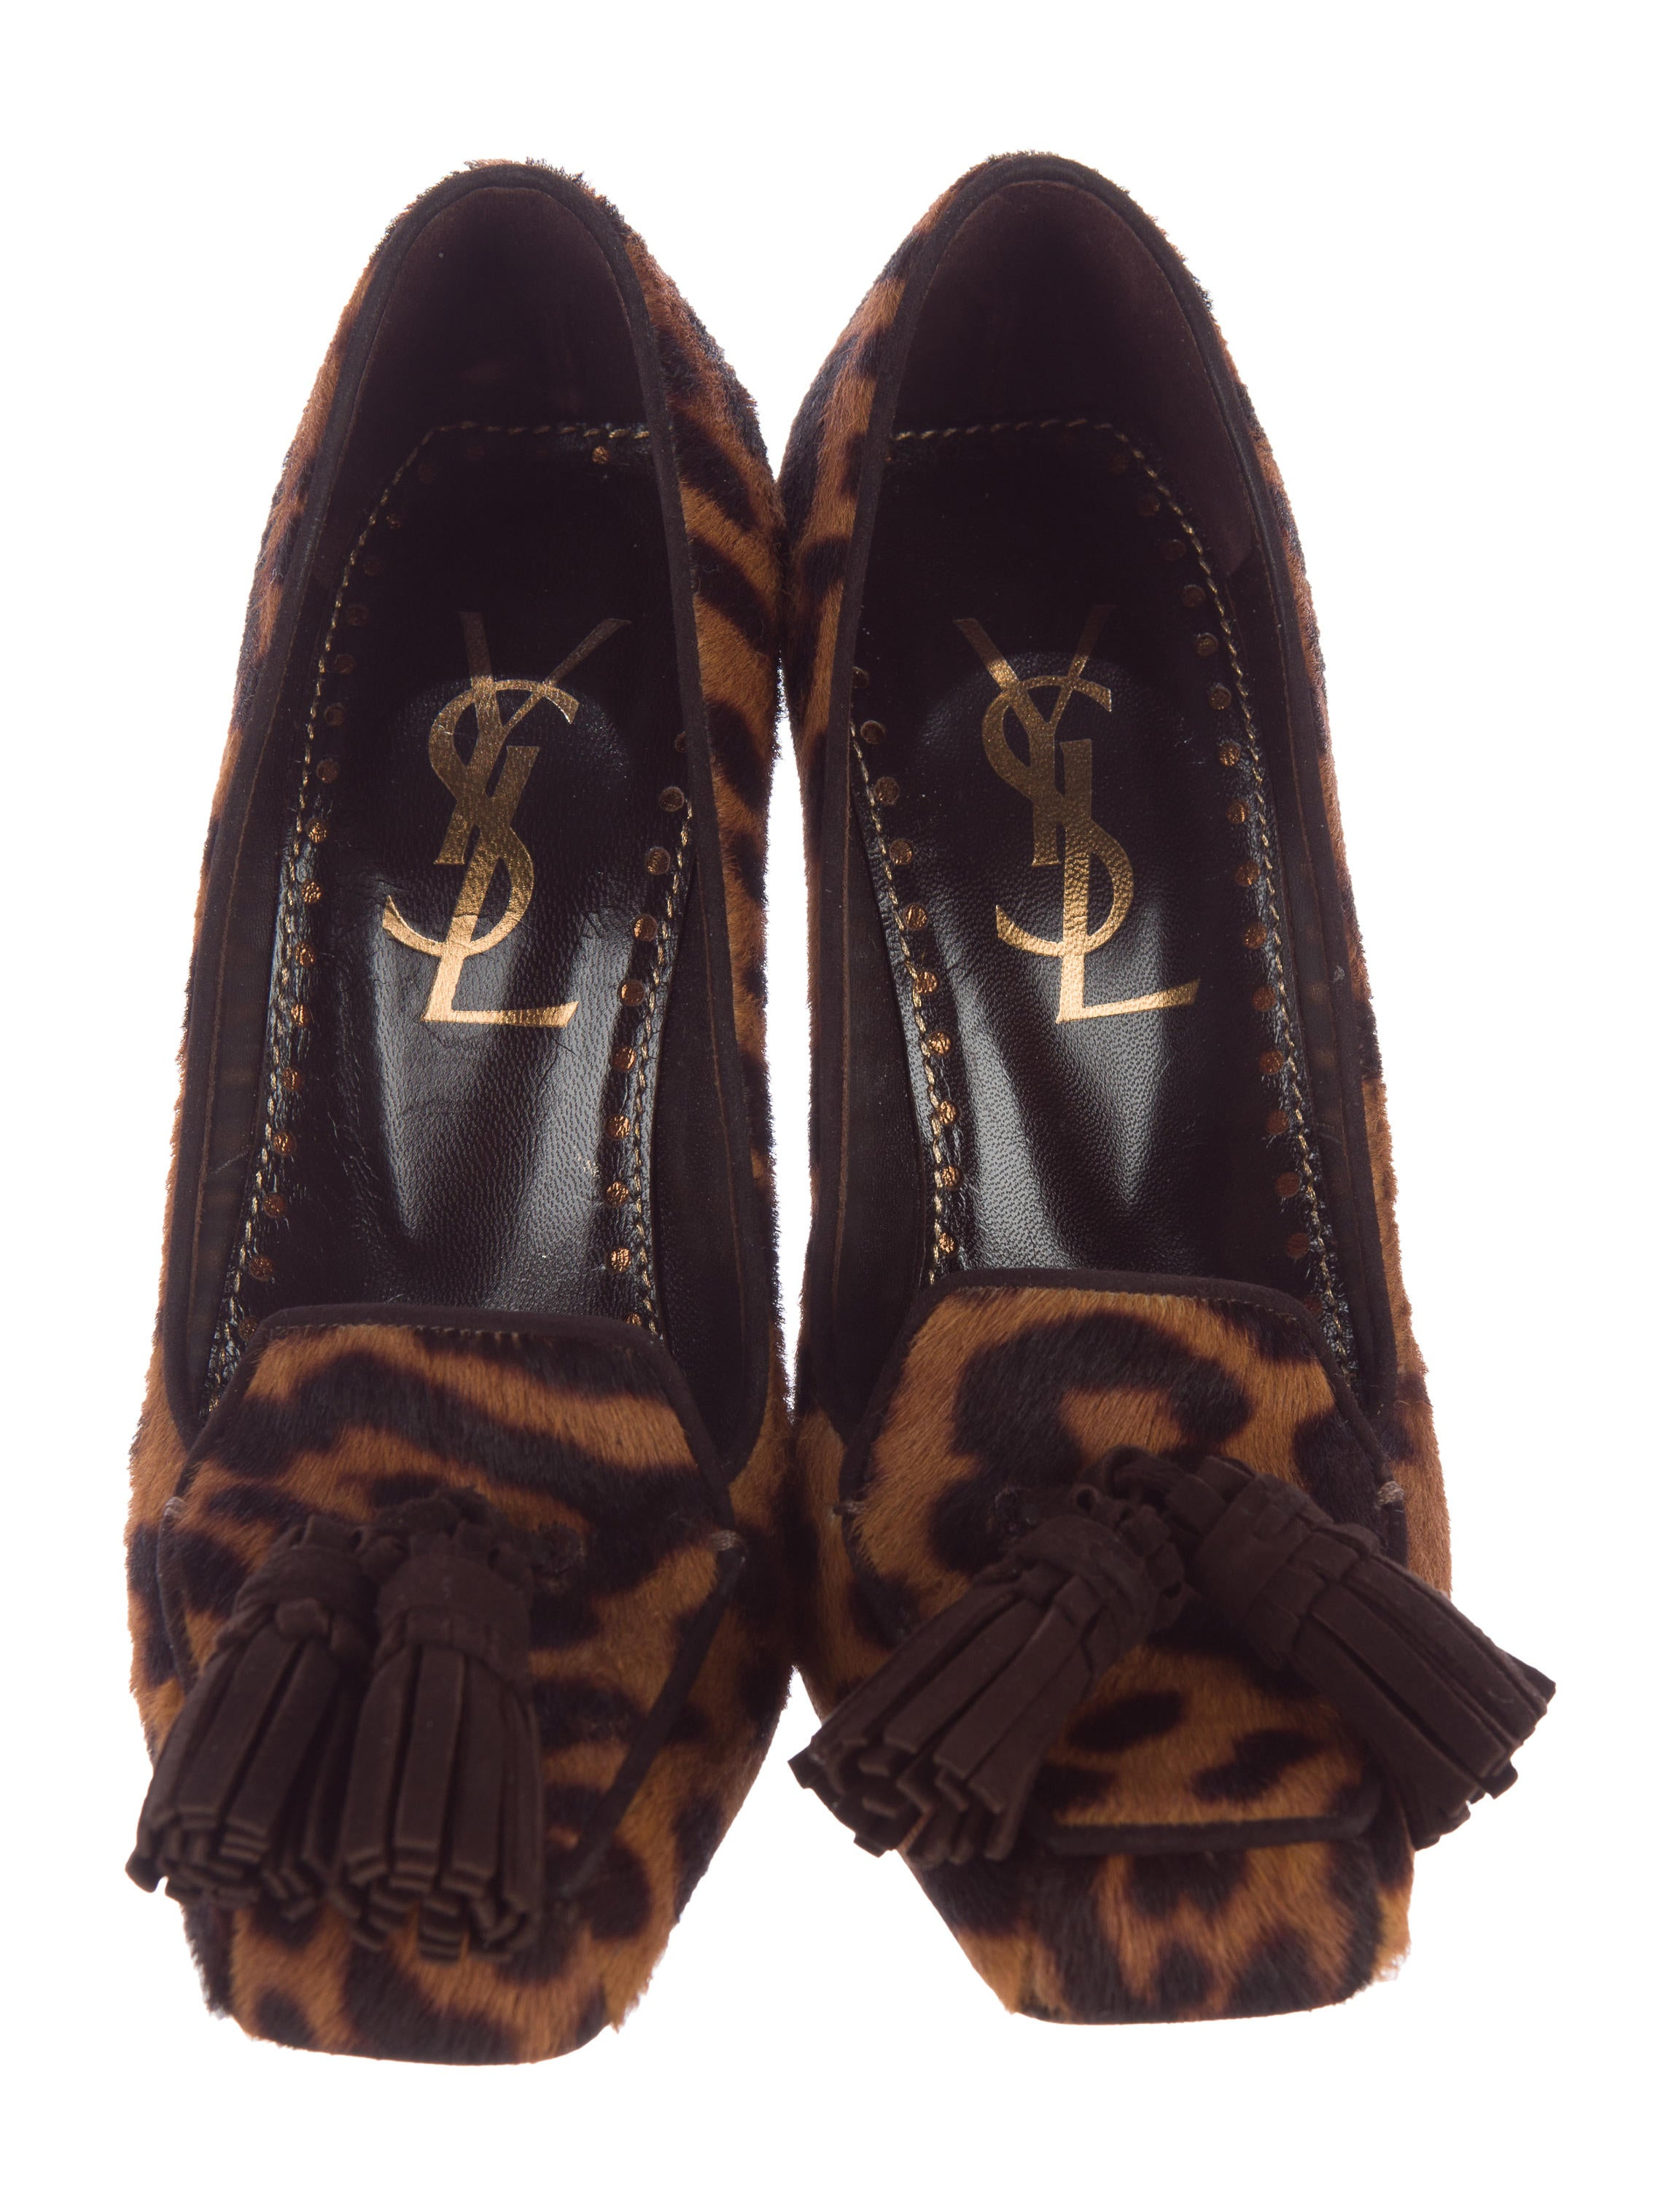 Yves Saint Laurent St. Sulpice Ponyhair Pumps pay with visa for sale affordable discount visa payment wlAb1